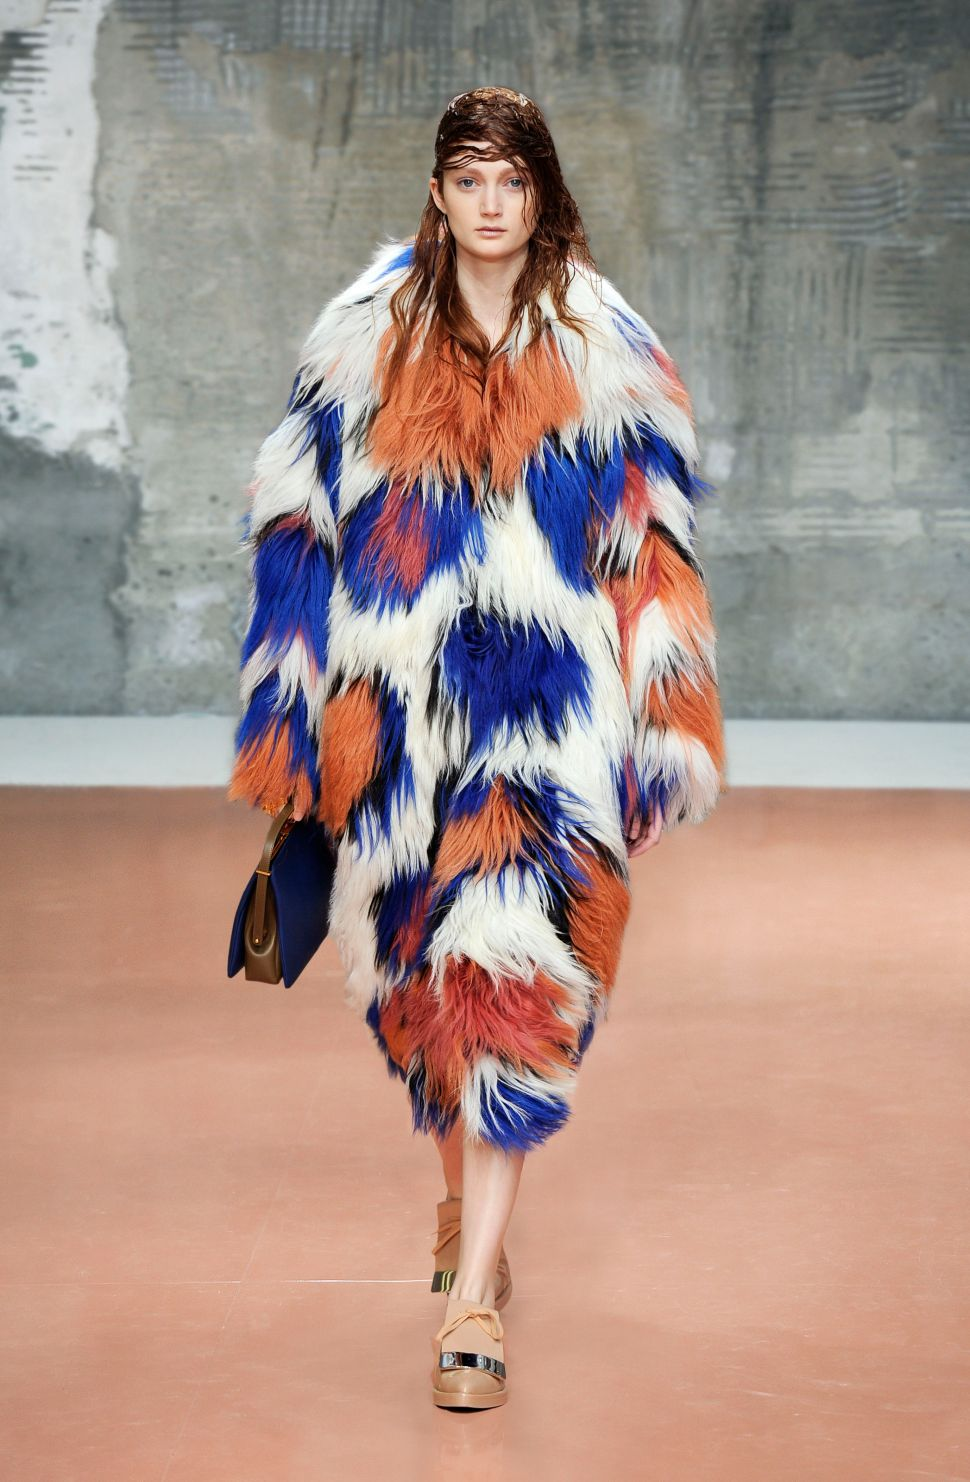 Here's An Orange and Blue Shearling Marni Coat Because Why Not?